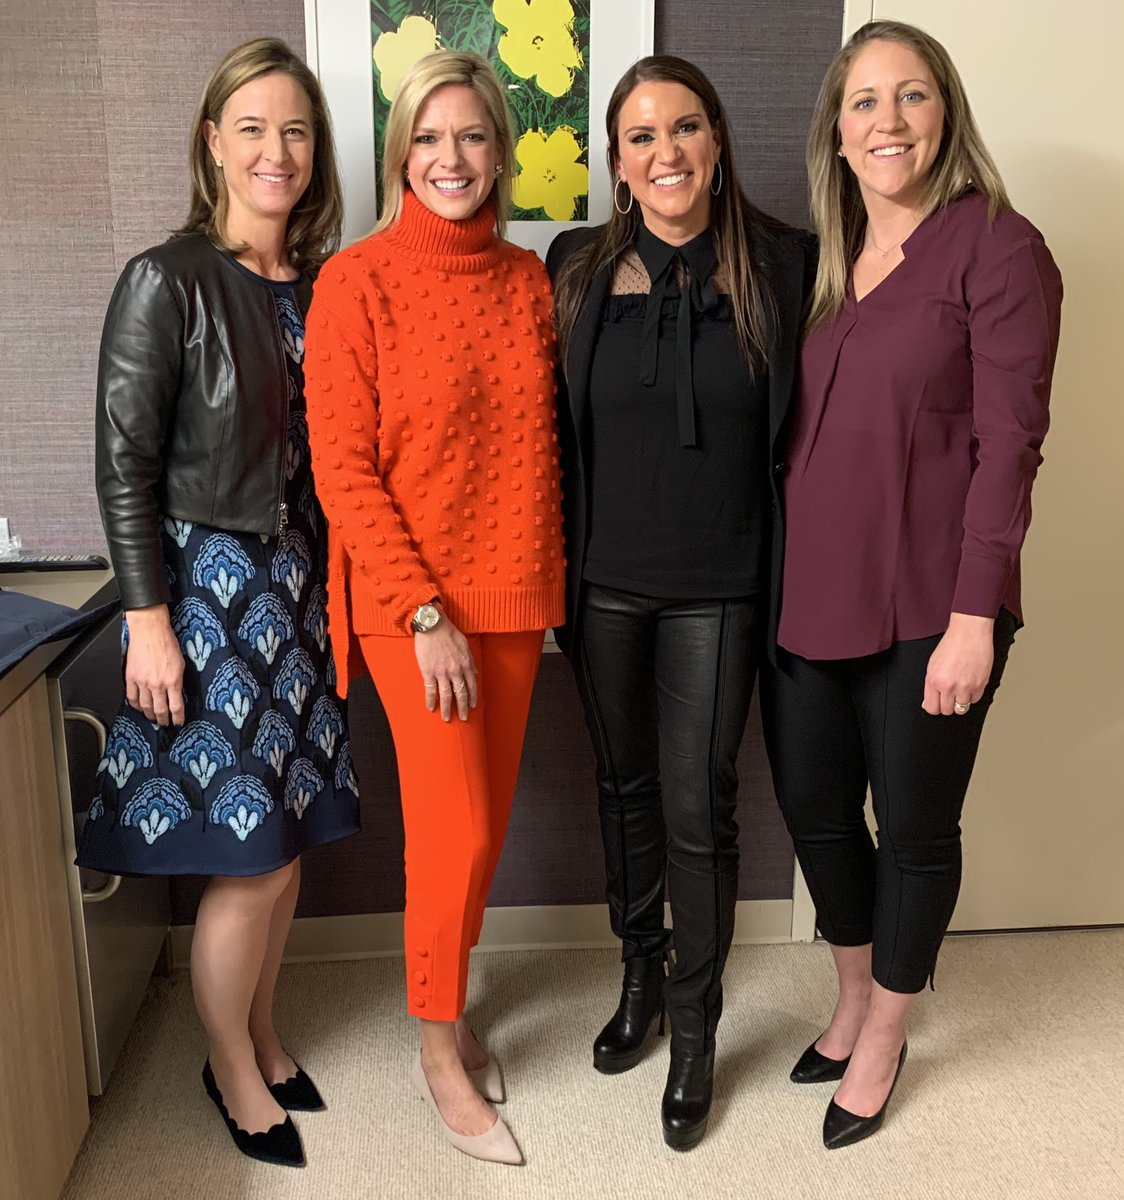 Ended #GivingTuesday in NYC with @seeher2020 & @NBCUniversal alongside @jennystorms, @mduggan10 & @KathrynTappen. Thank you for having me and supporting female athletes everywhere @lindayacc & @laura_molen! #SeeHerInSports